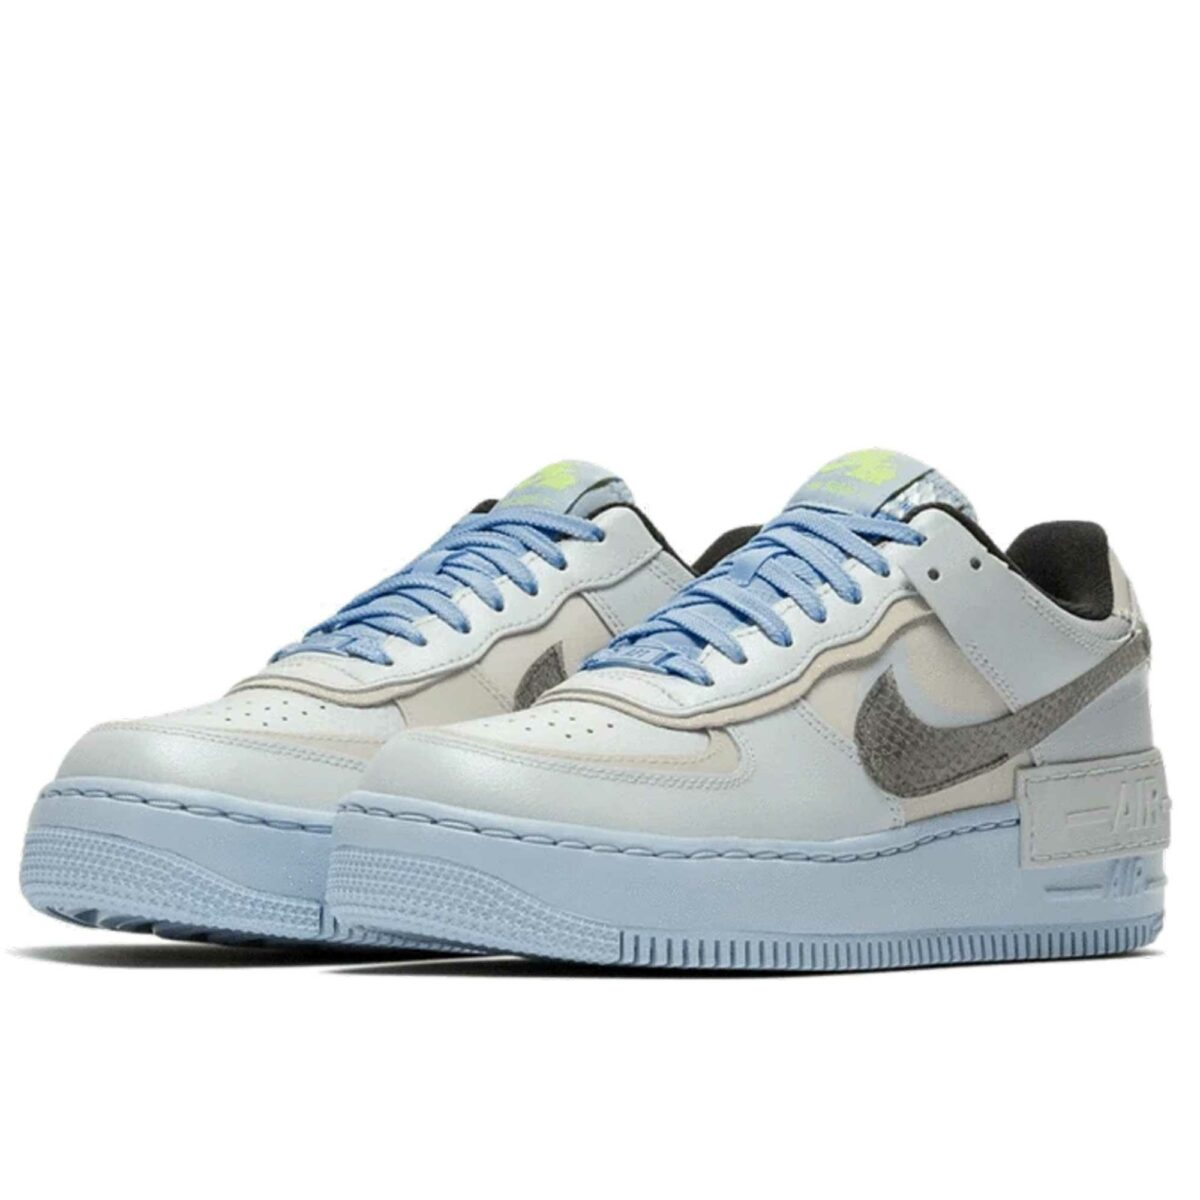 nike air force 1 shadow hydrogen blue cv3027_001 купить